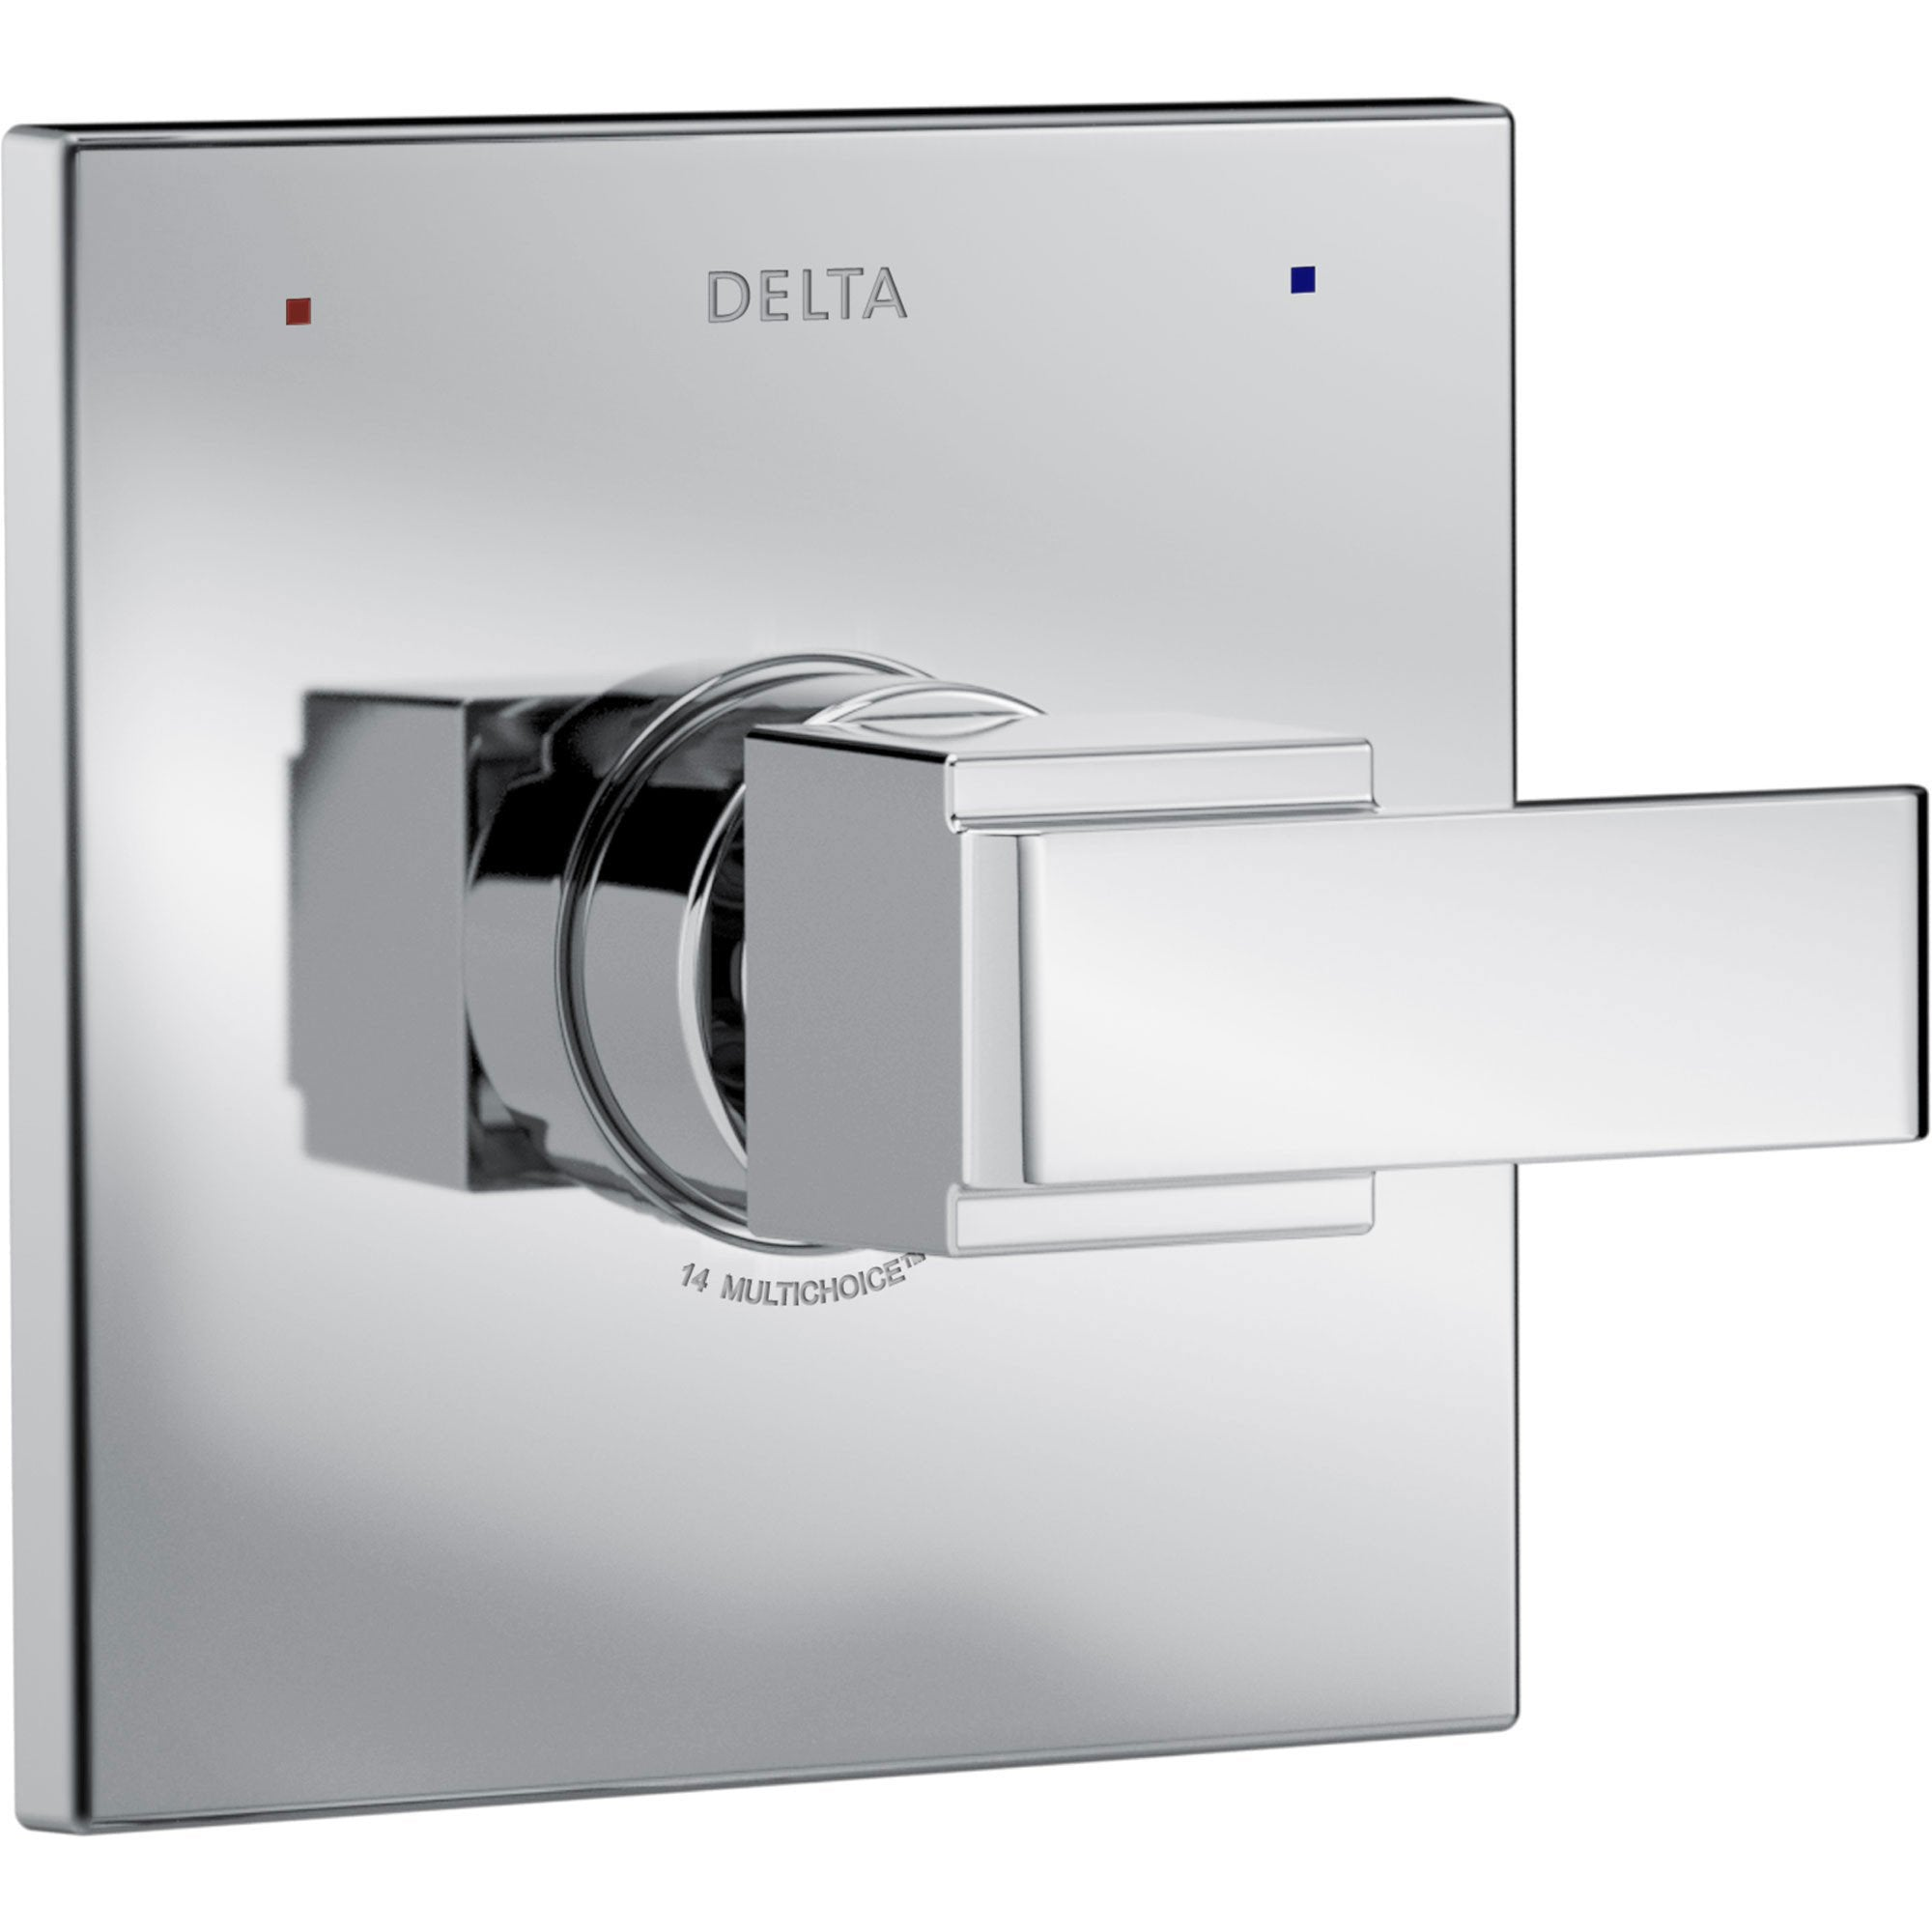 Delta Ara Modern Monitor 14 Series Chrome Finish Square Single Handle Pressure Balanced Shower Faucet Control INCLUDES Rough-in Valve with Stops D1255V